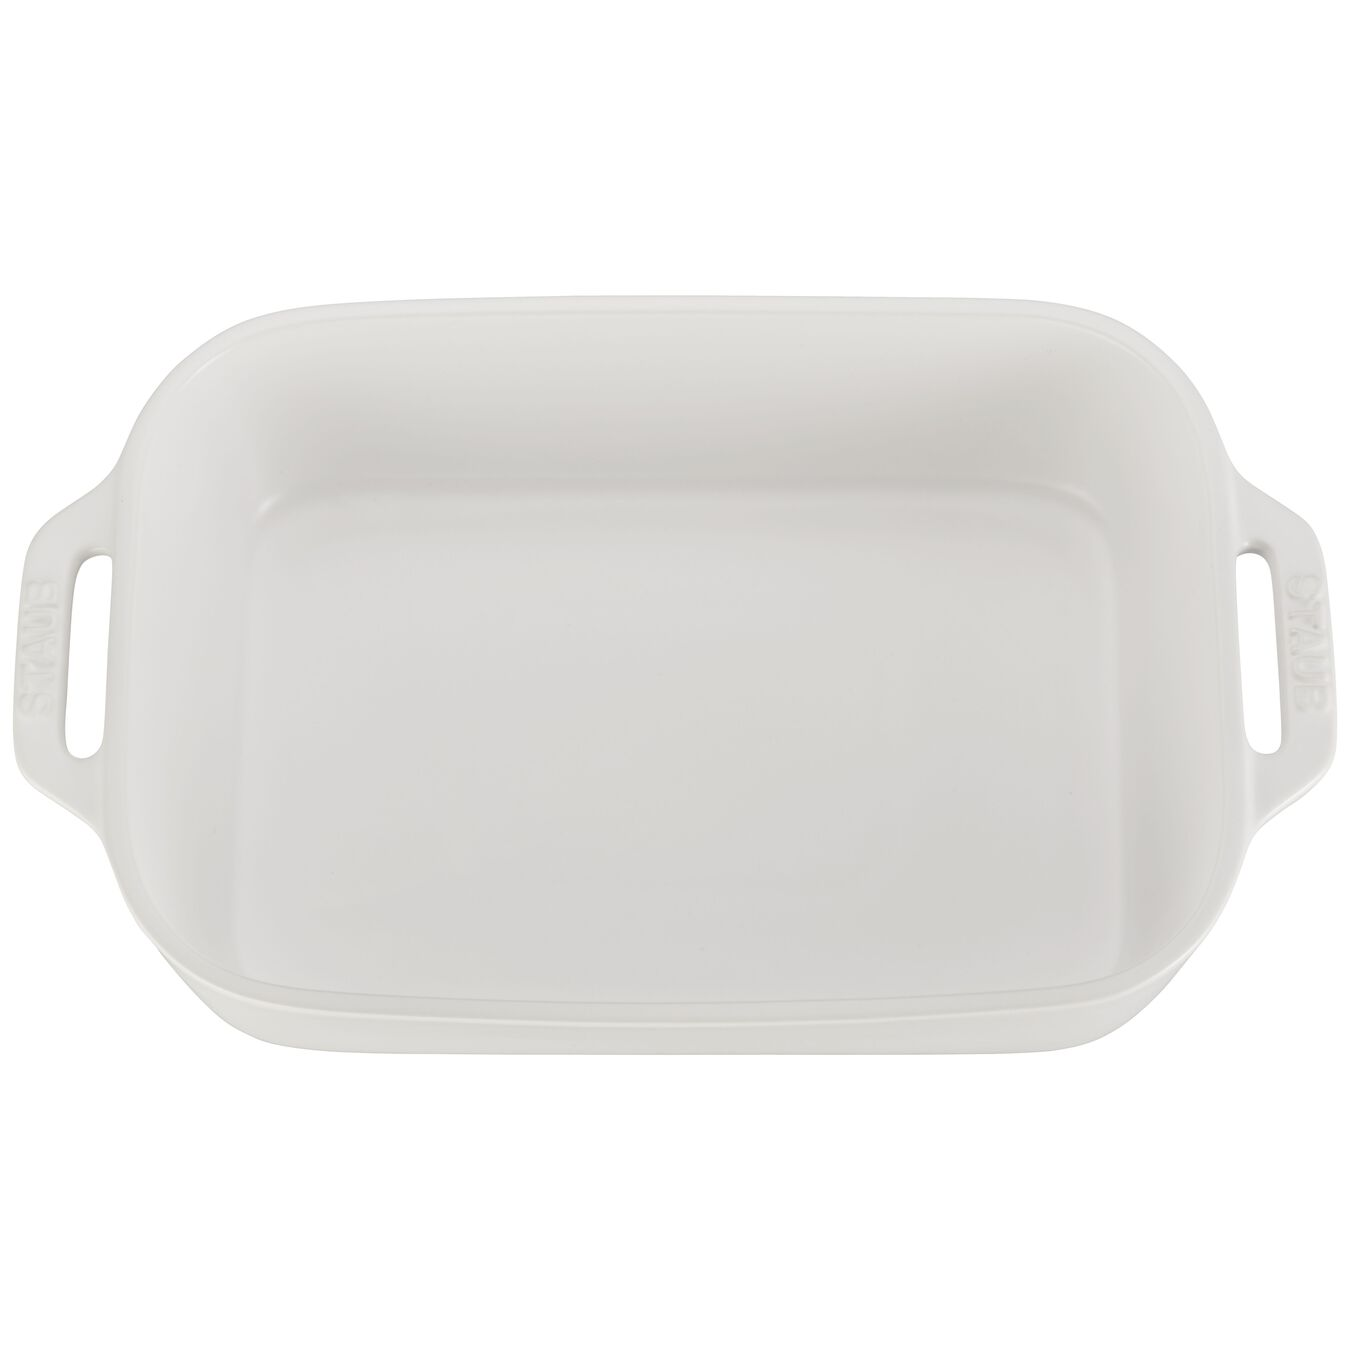 2-pc Rectangular Baking Dish Set - Matte White,,large 4